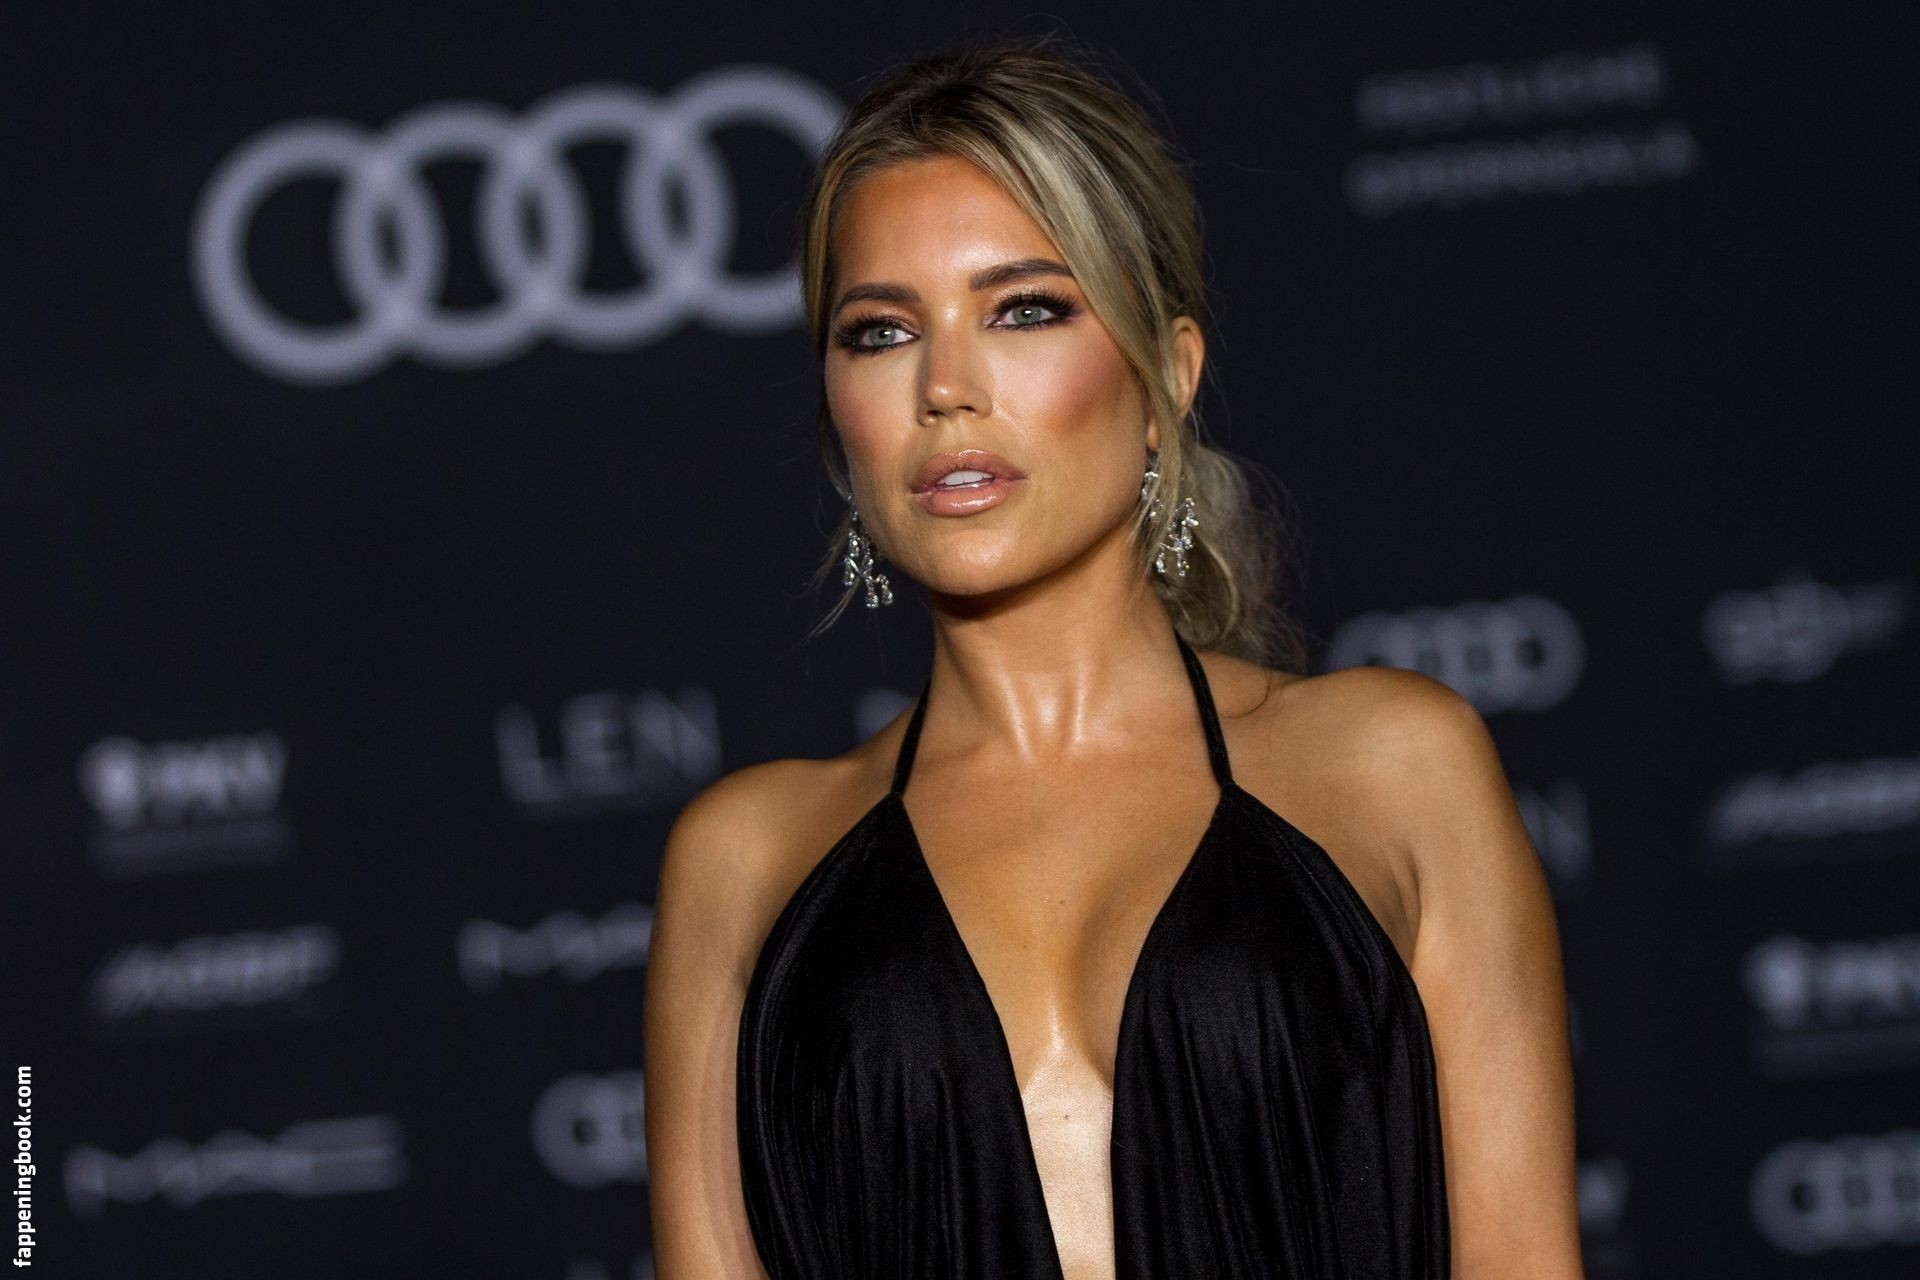 Sylvie Meis Nude, Sexy, The Fappening, Uncensored - Photo